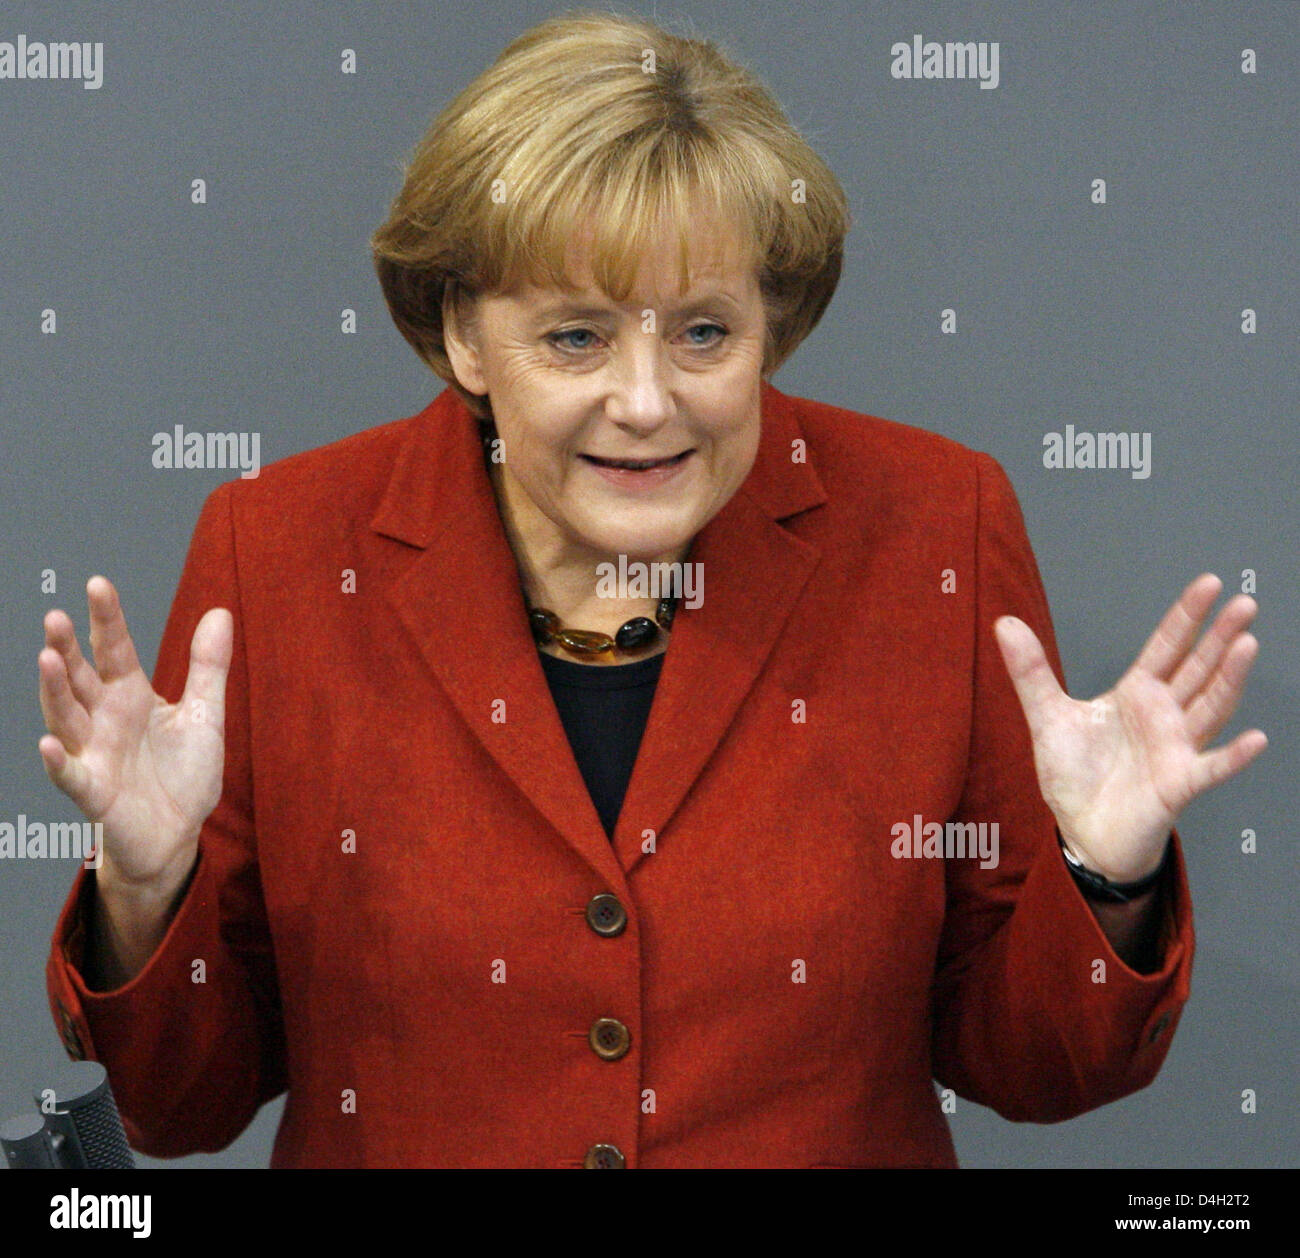 German Chancellor Angela Merkel gives a government declaration on the global financial crisis at the Bundestag in Berlin, Germany, 15 October 2008. The German parliament debates the rescue plan for banks and the increase of child benefits. Photo: WOLFGANG KUMM Stock Photo